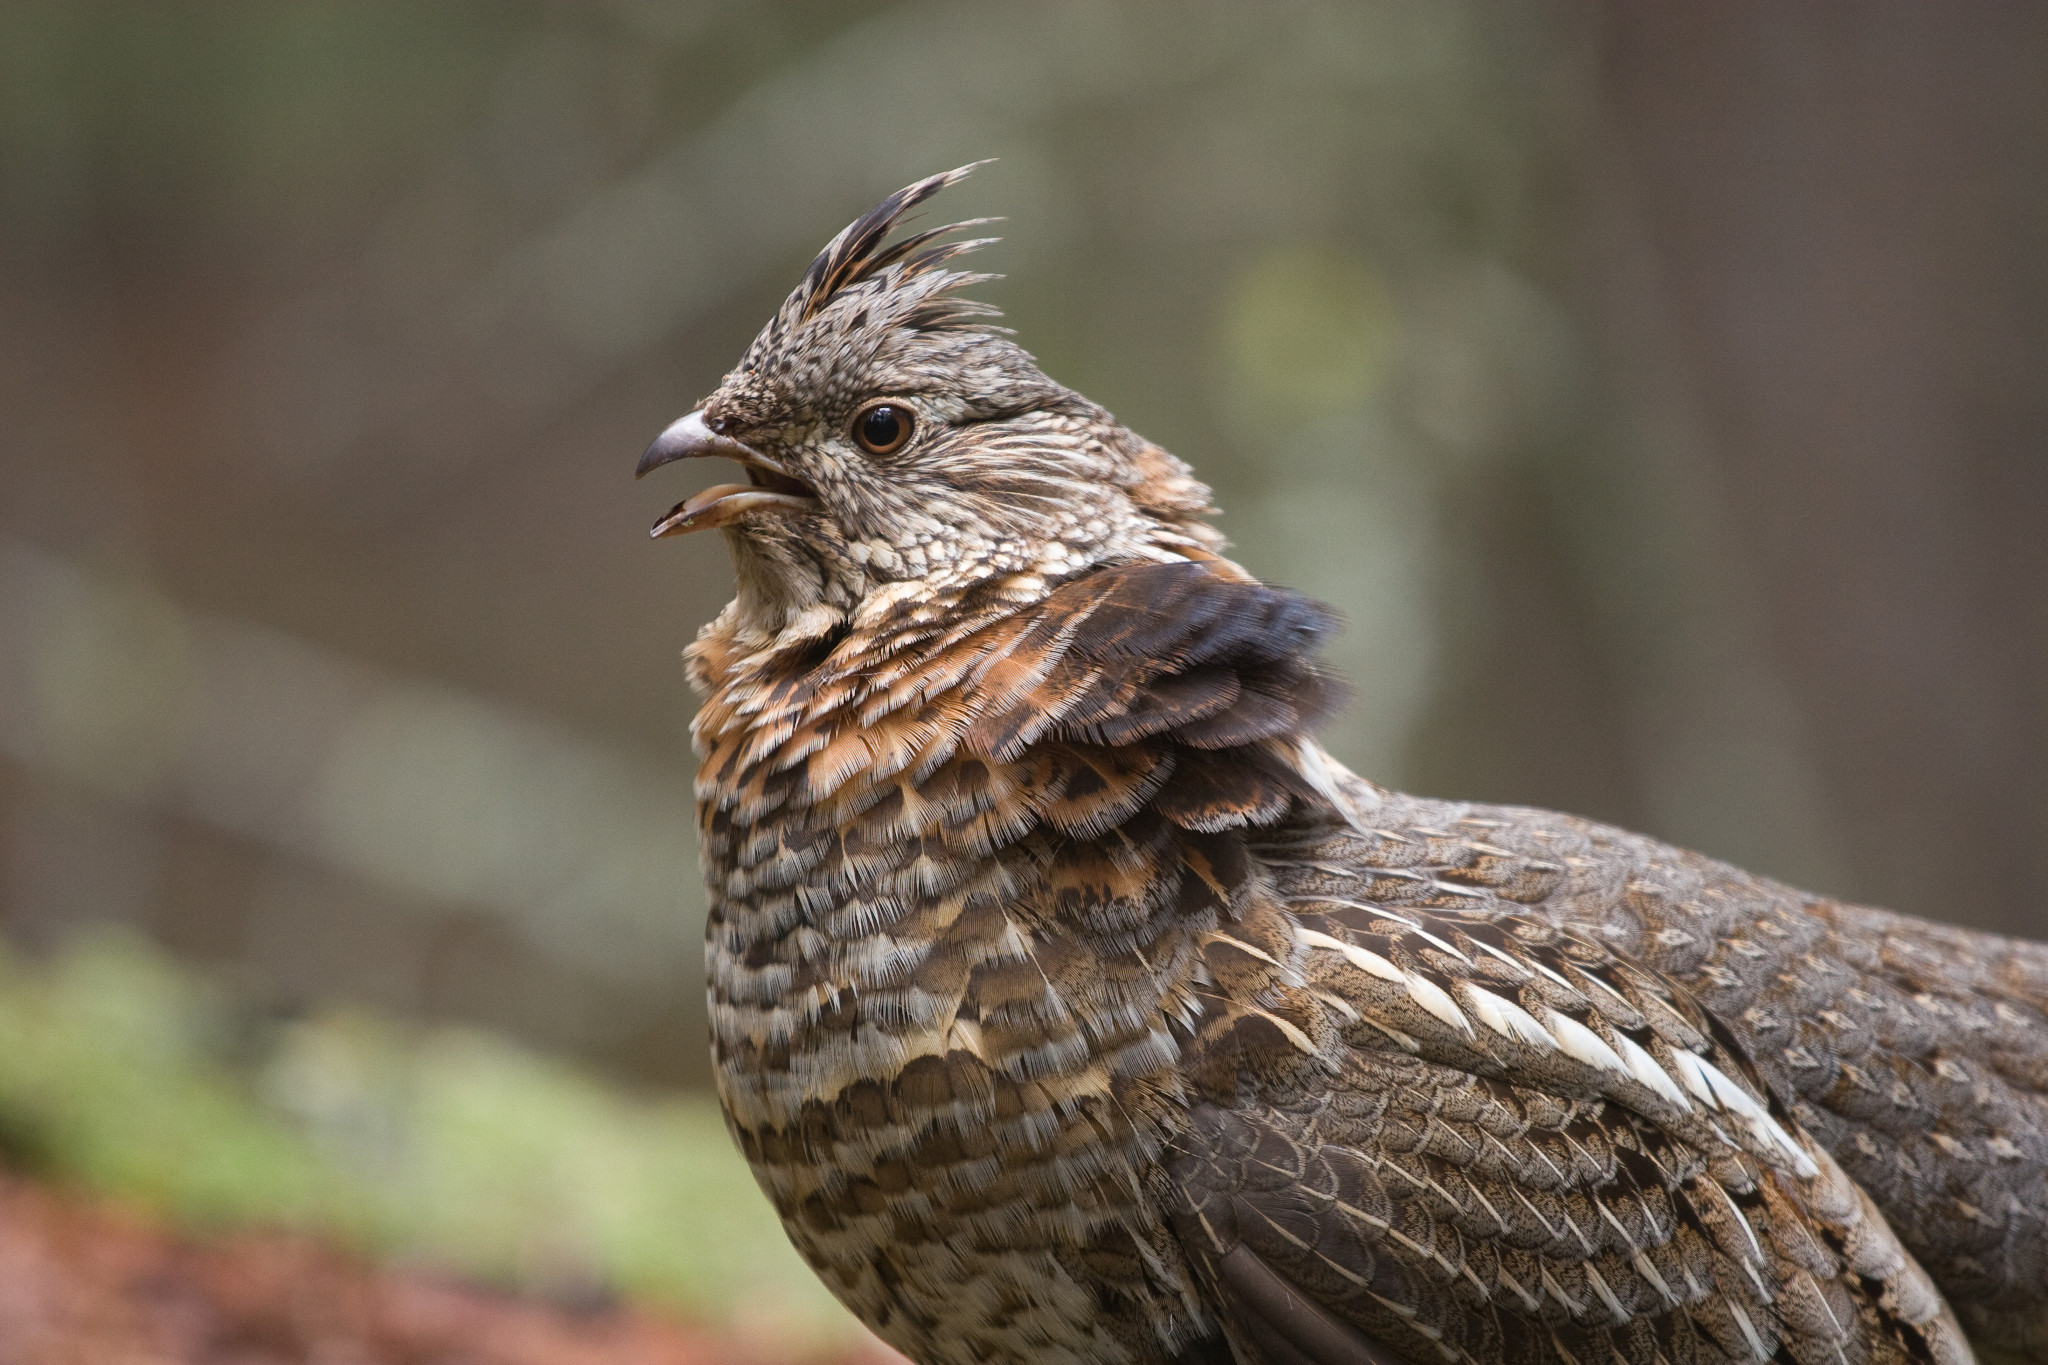 male ruffed grouse with puffed feathers for a mating display